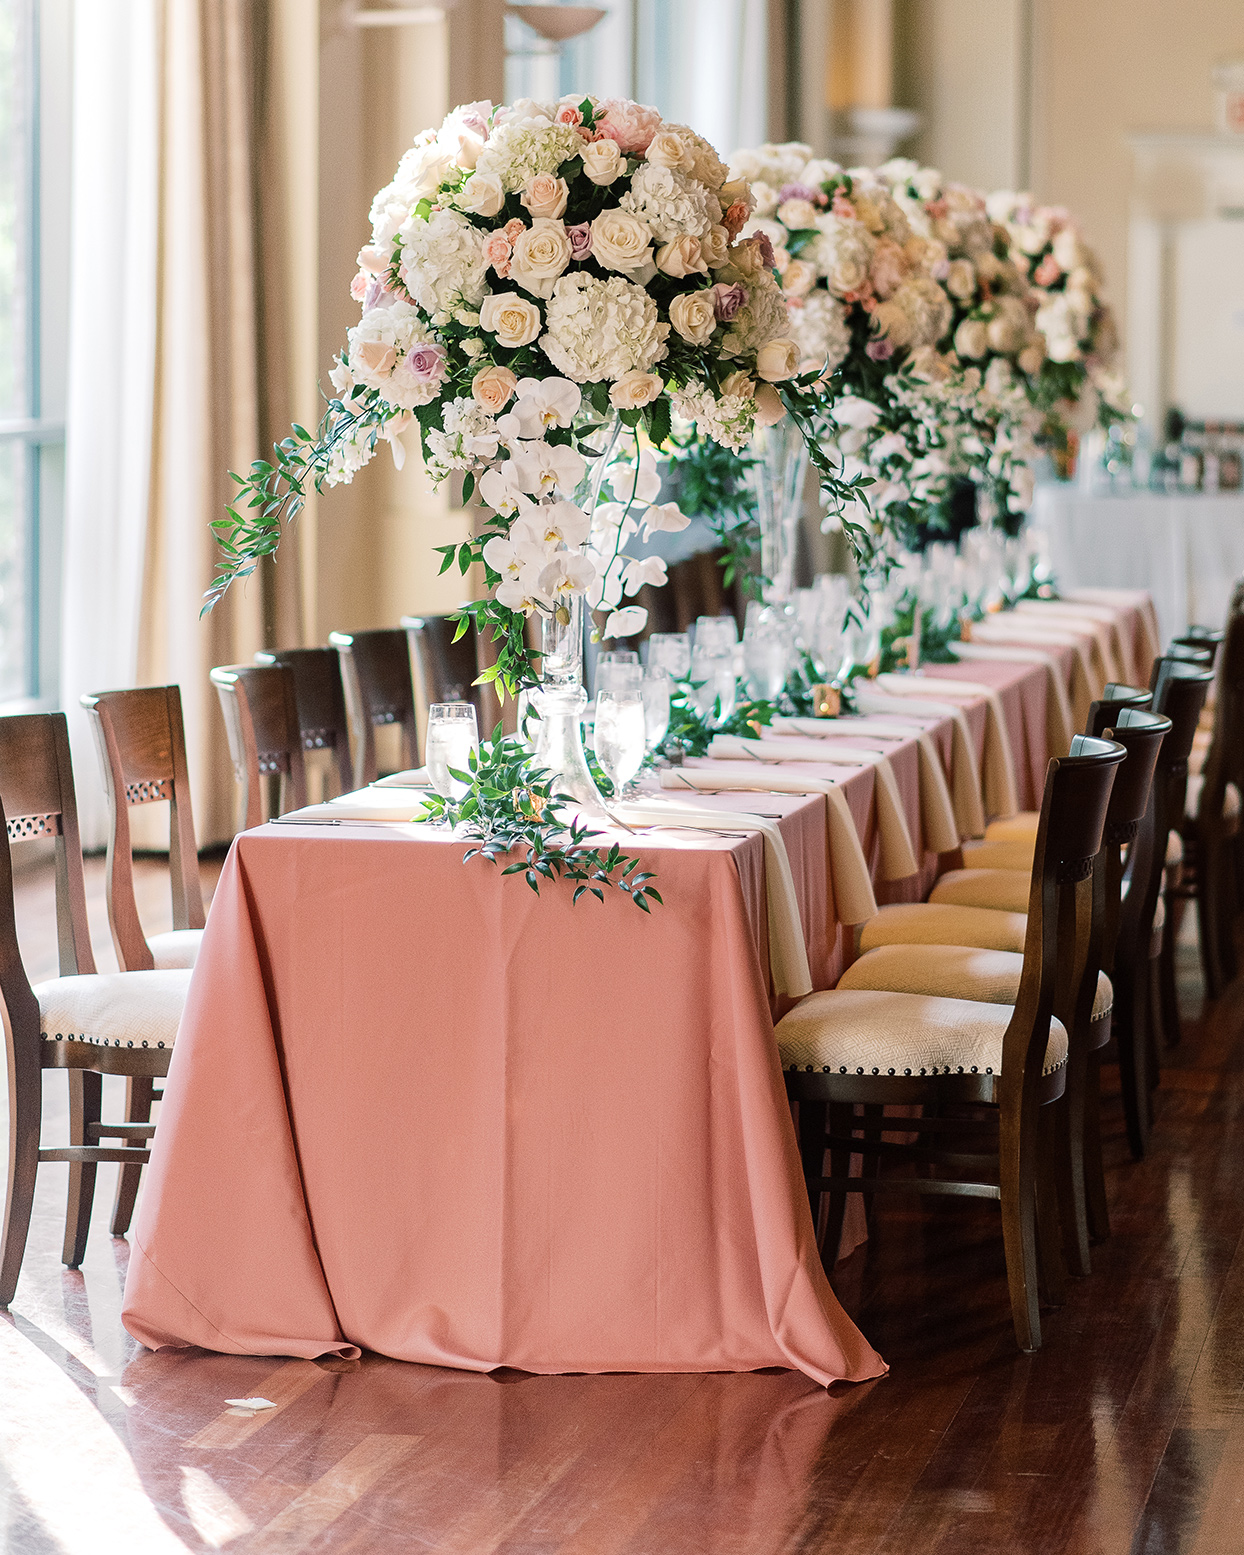 amelia justin wedding reception long table with pink cloth